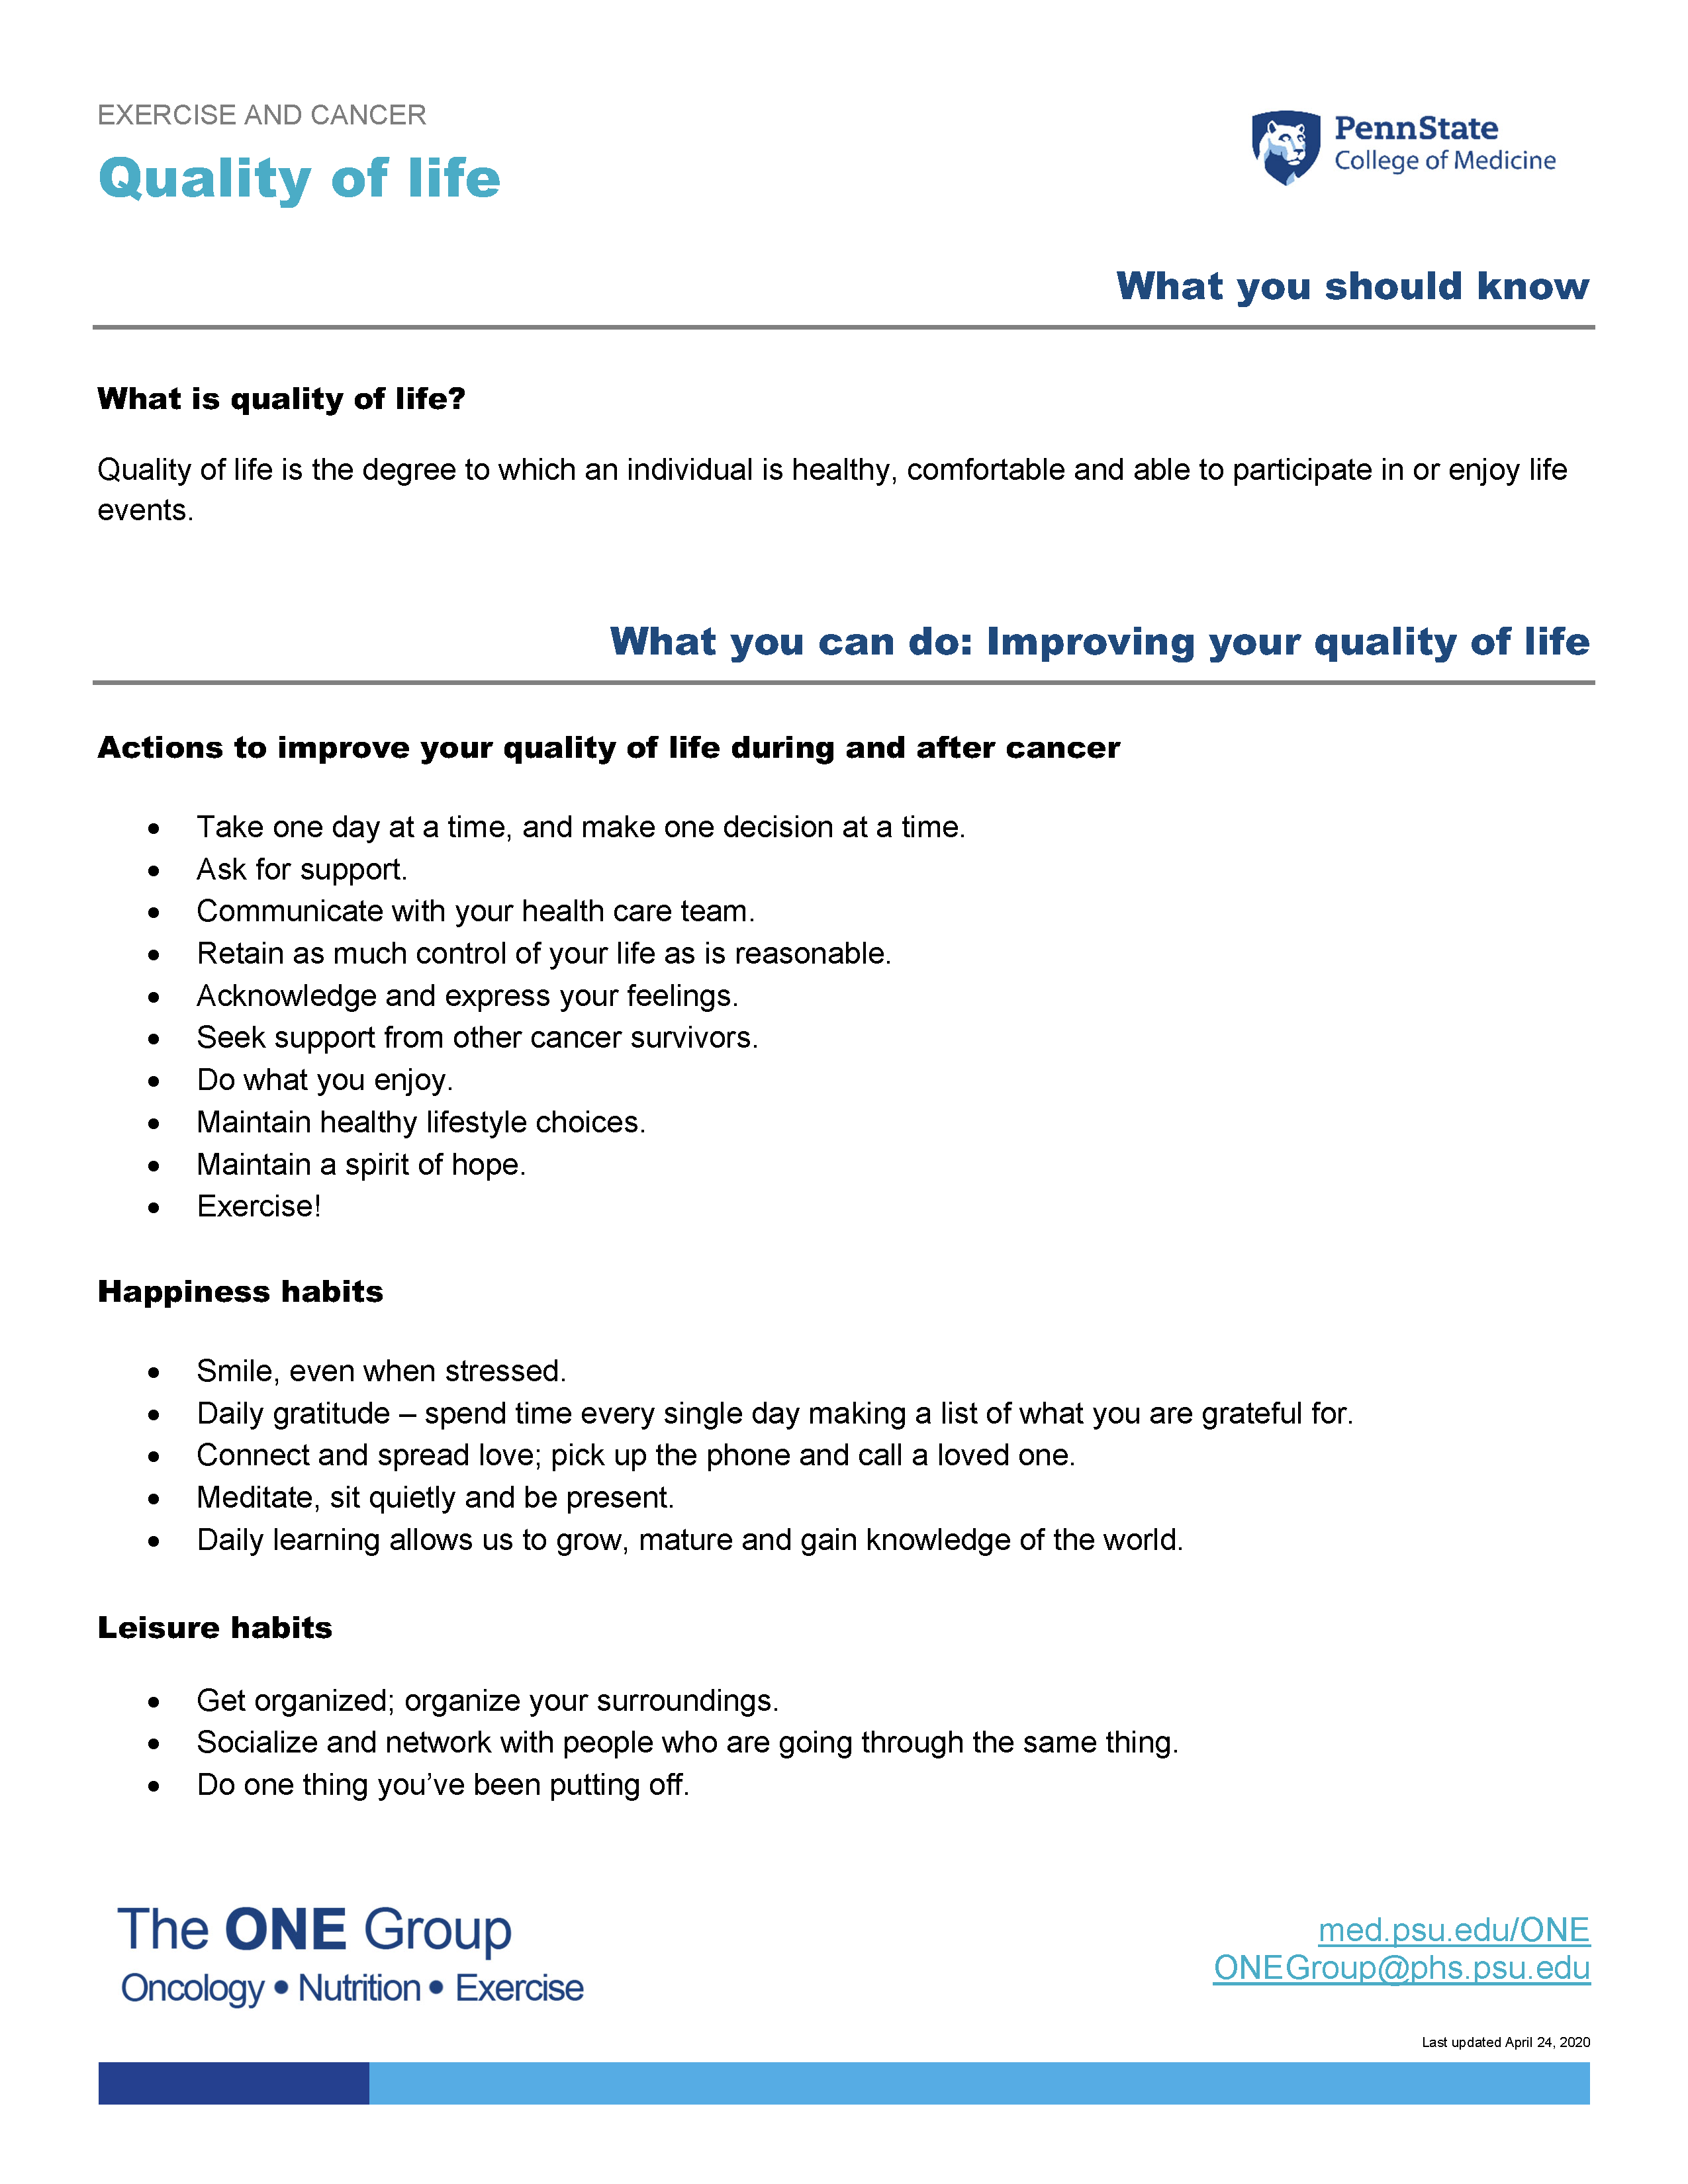 The quality of life guide from The ONE Group includes the information on this page, formatted for print.